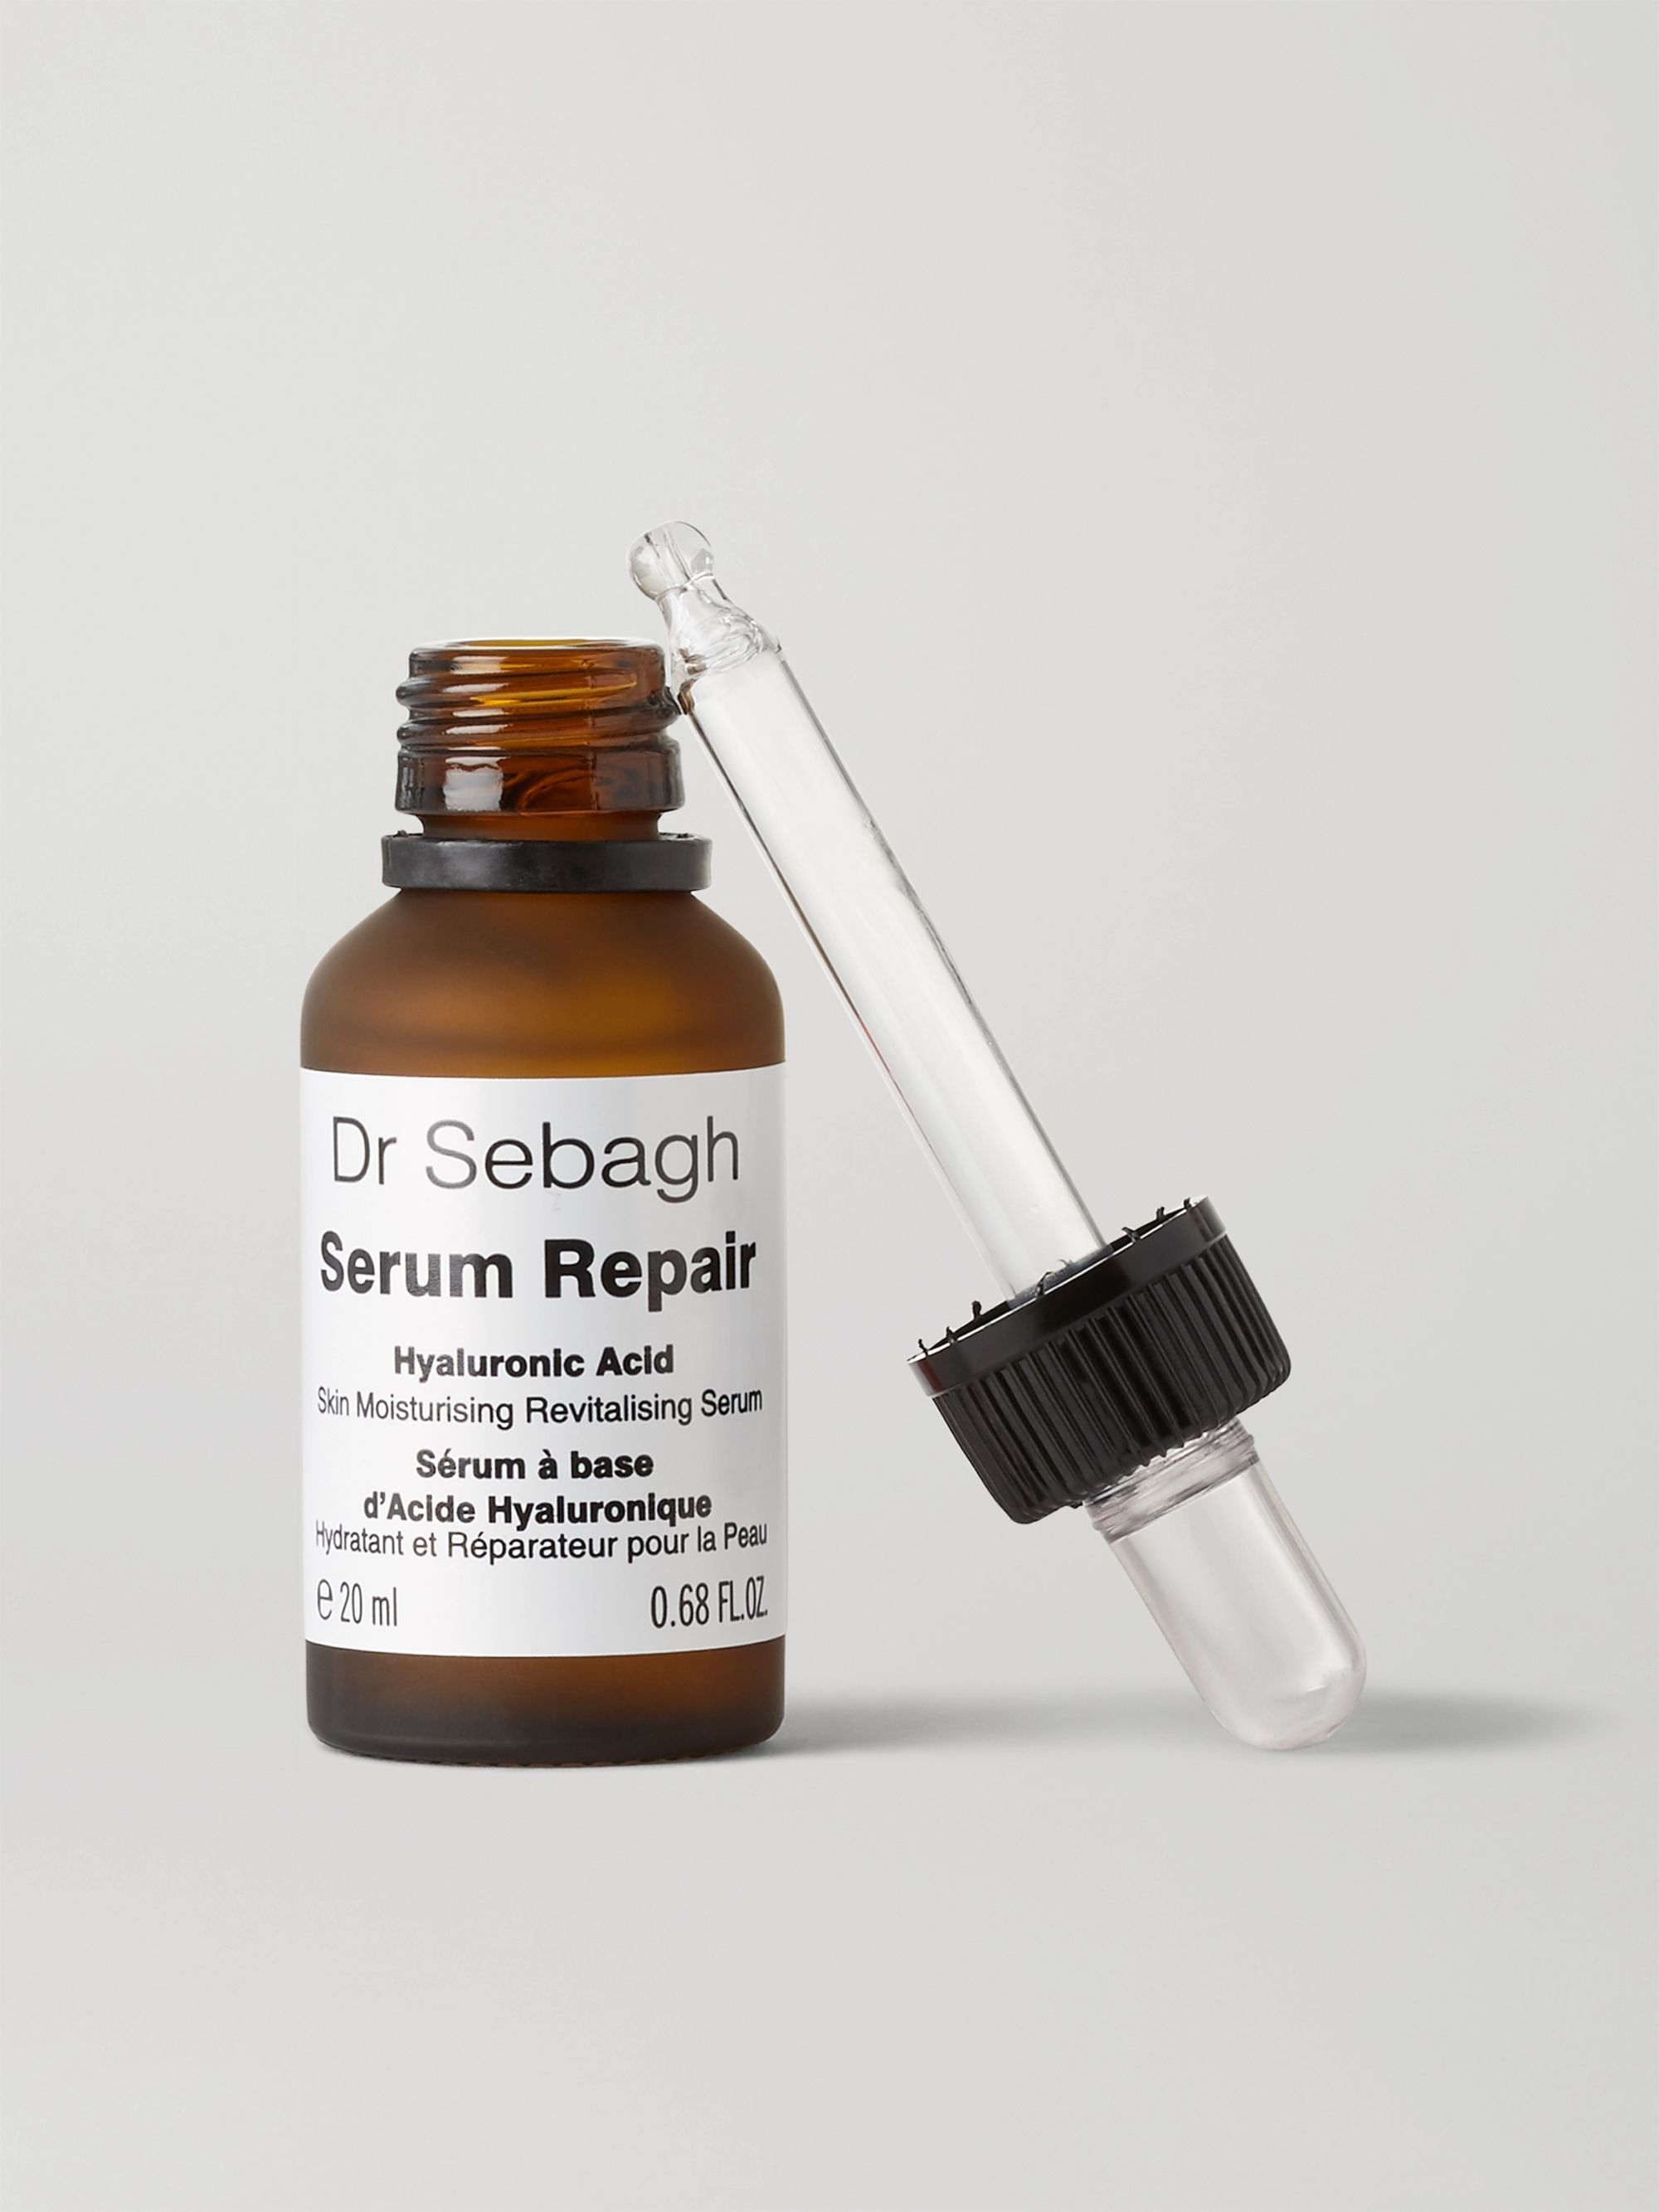 Dr Sebagh Serum Repair, 20ml